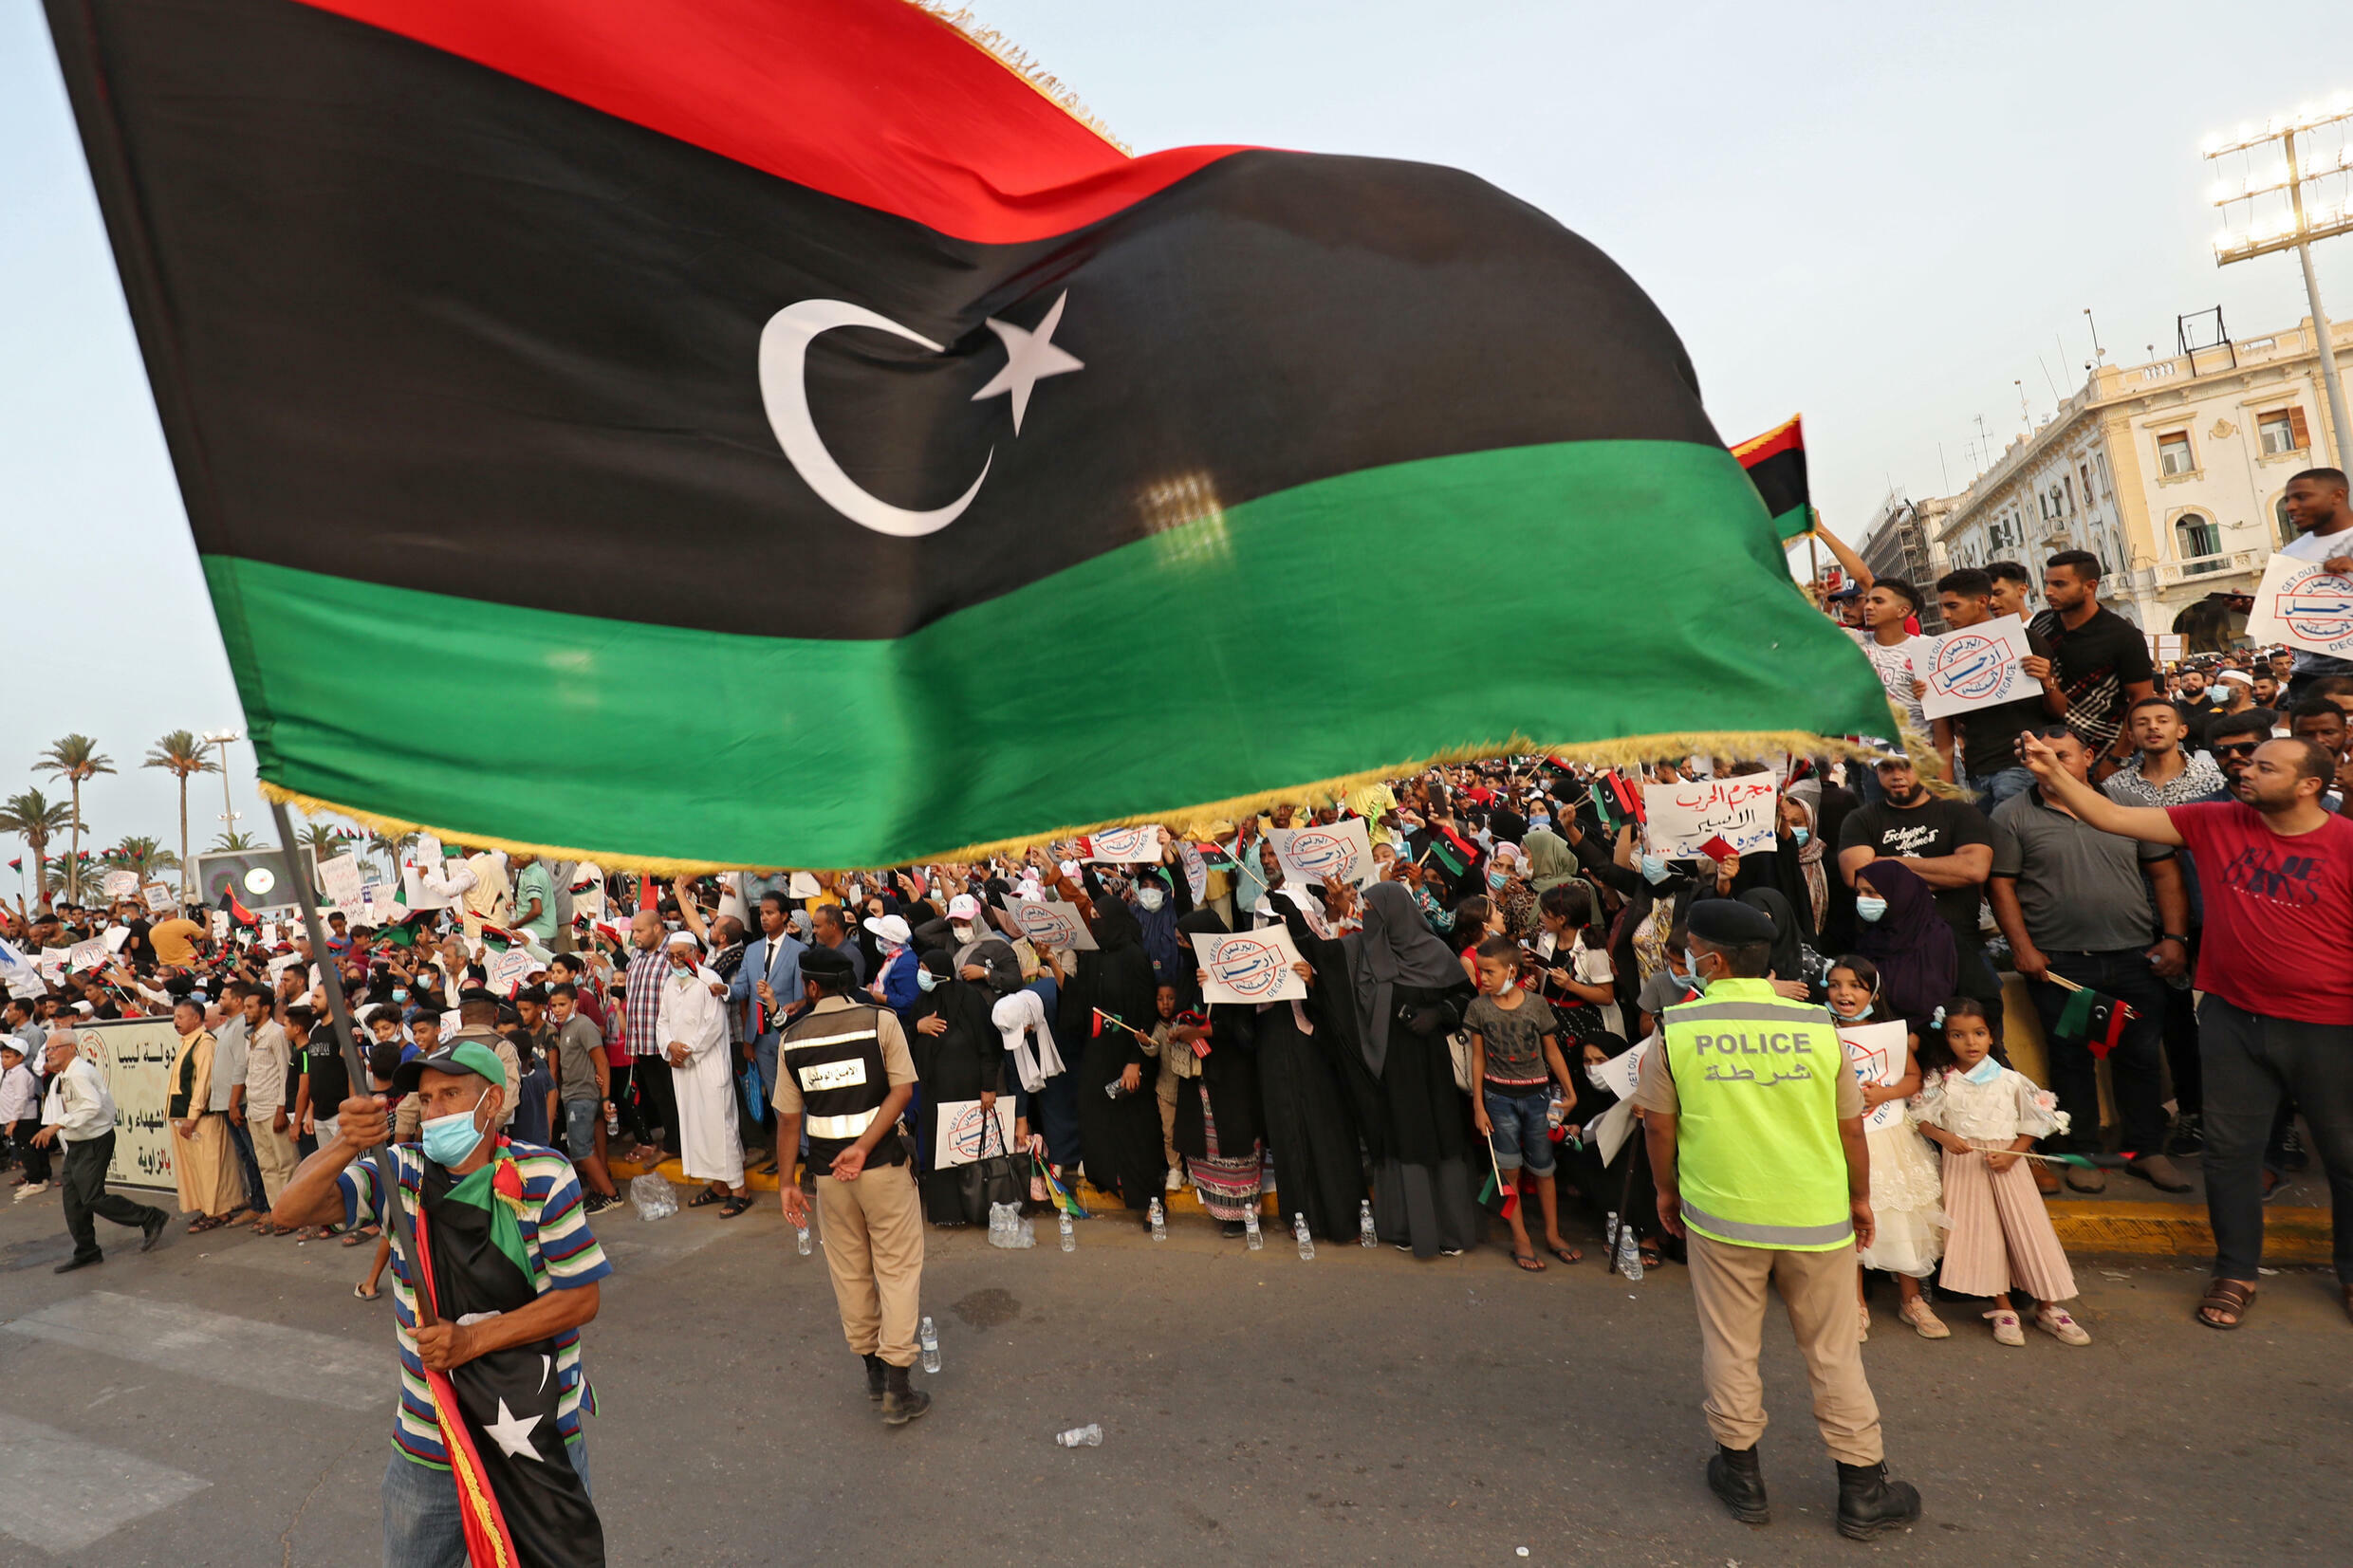 Libyans gather to express support to the country's unity government in Tripoli's Martyrs' Square on September 24, 2021